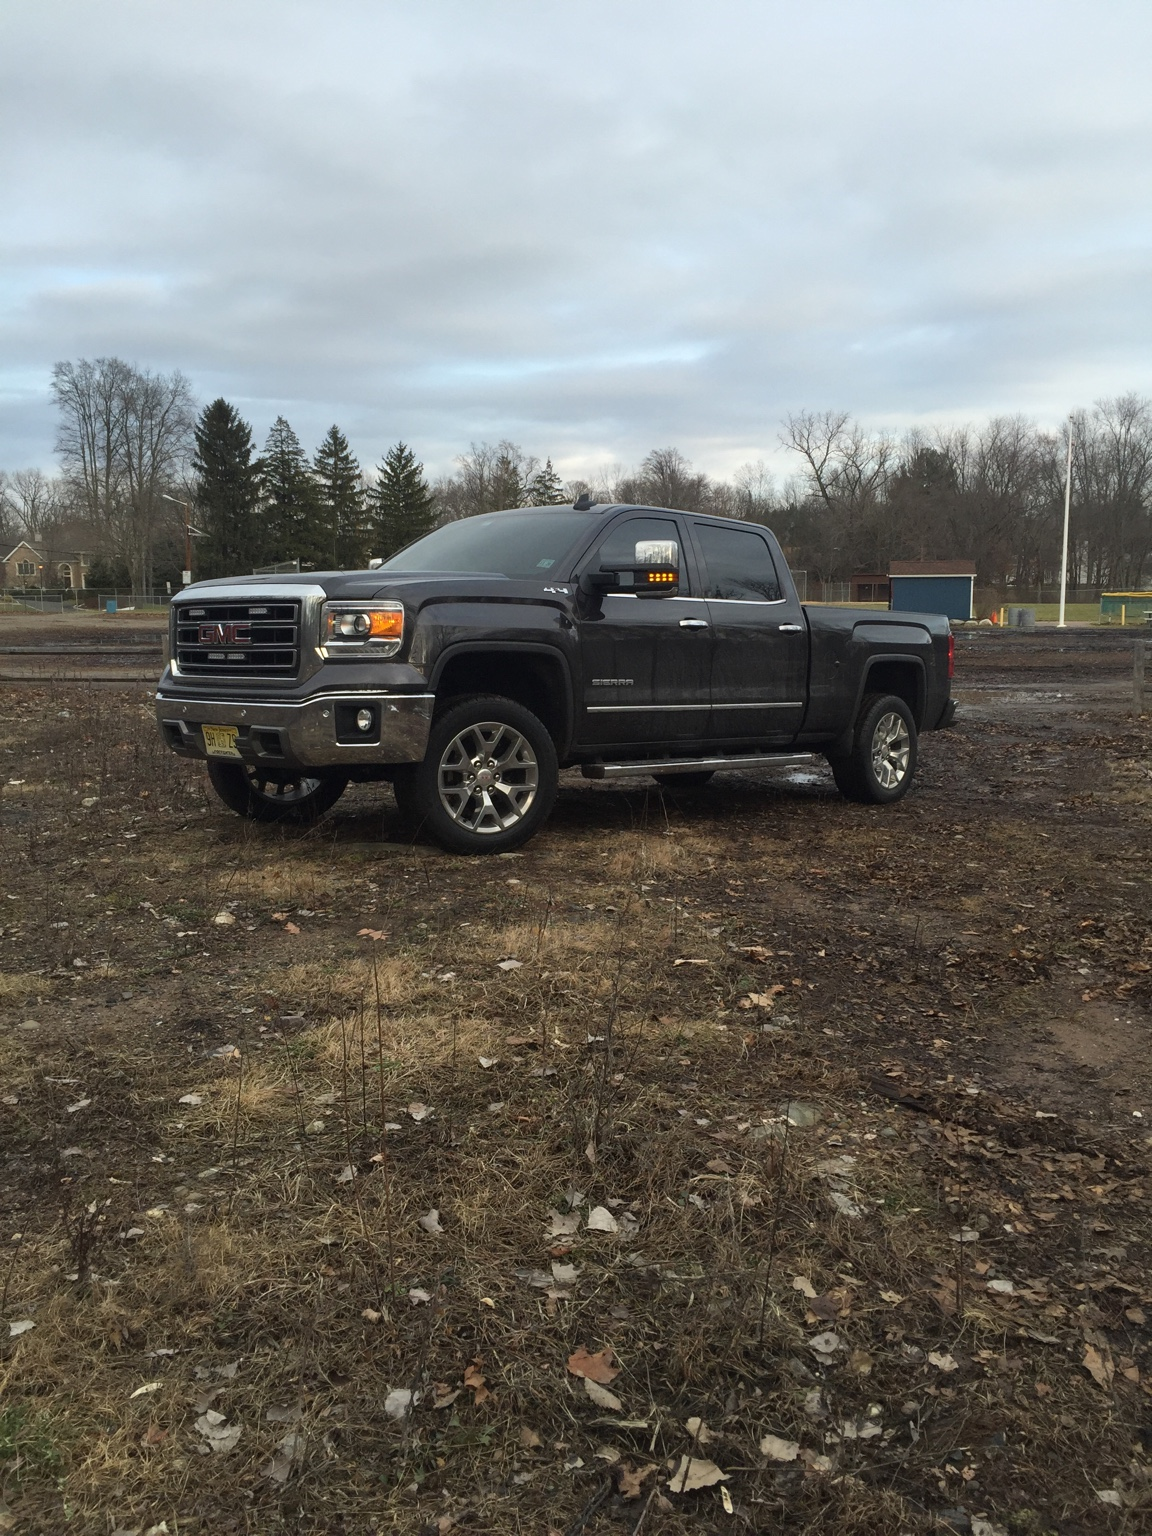 2014 Chevy Silverado Lifted >> Important - 2014+ Sierra /Silverado Level only - Leveling